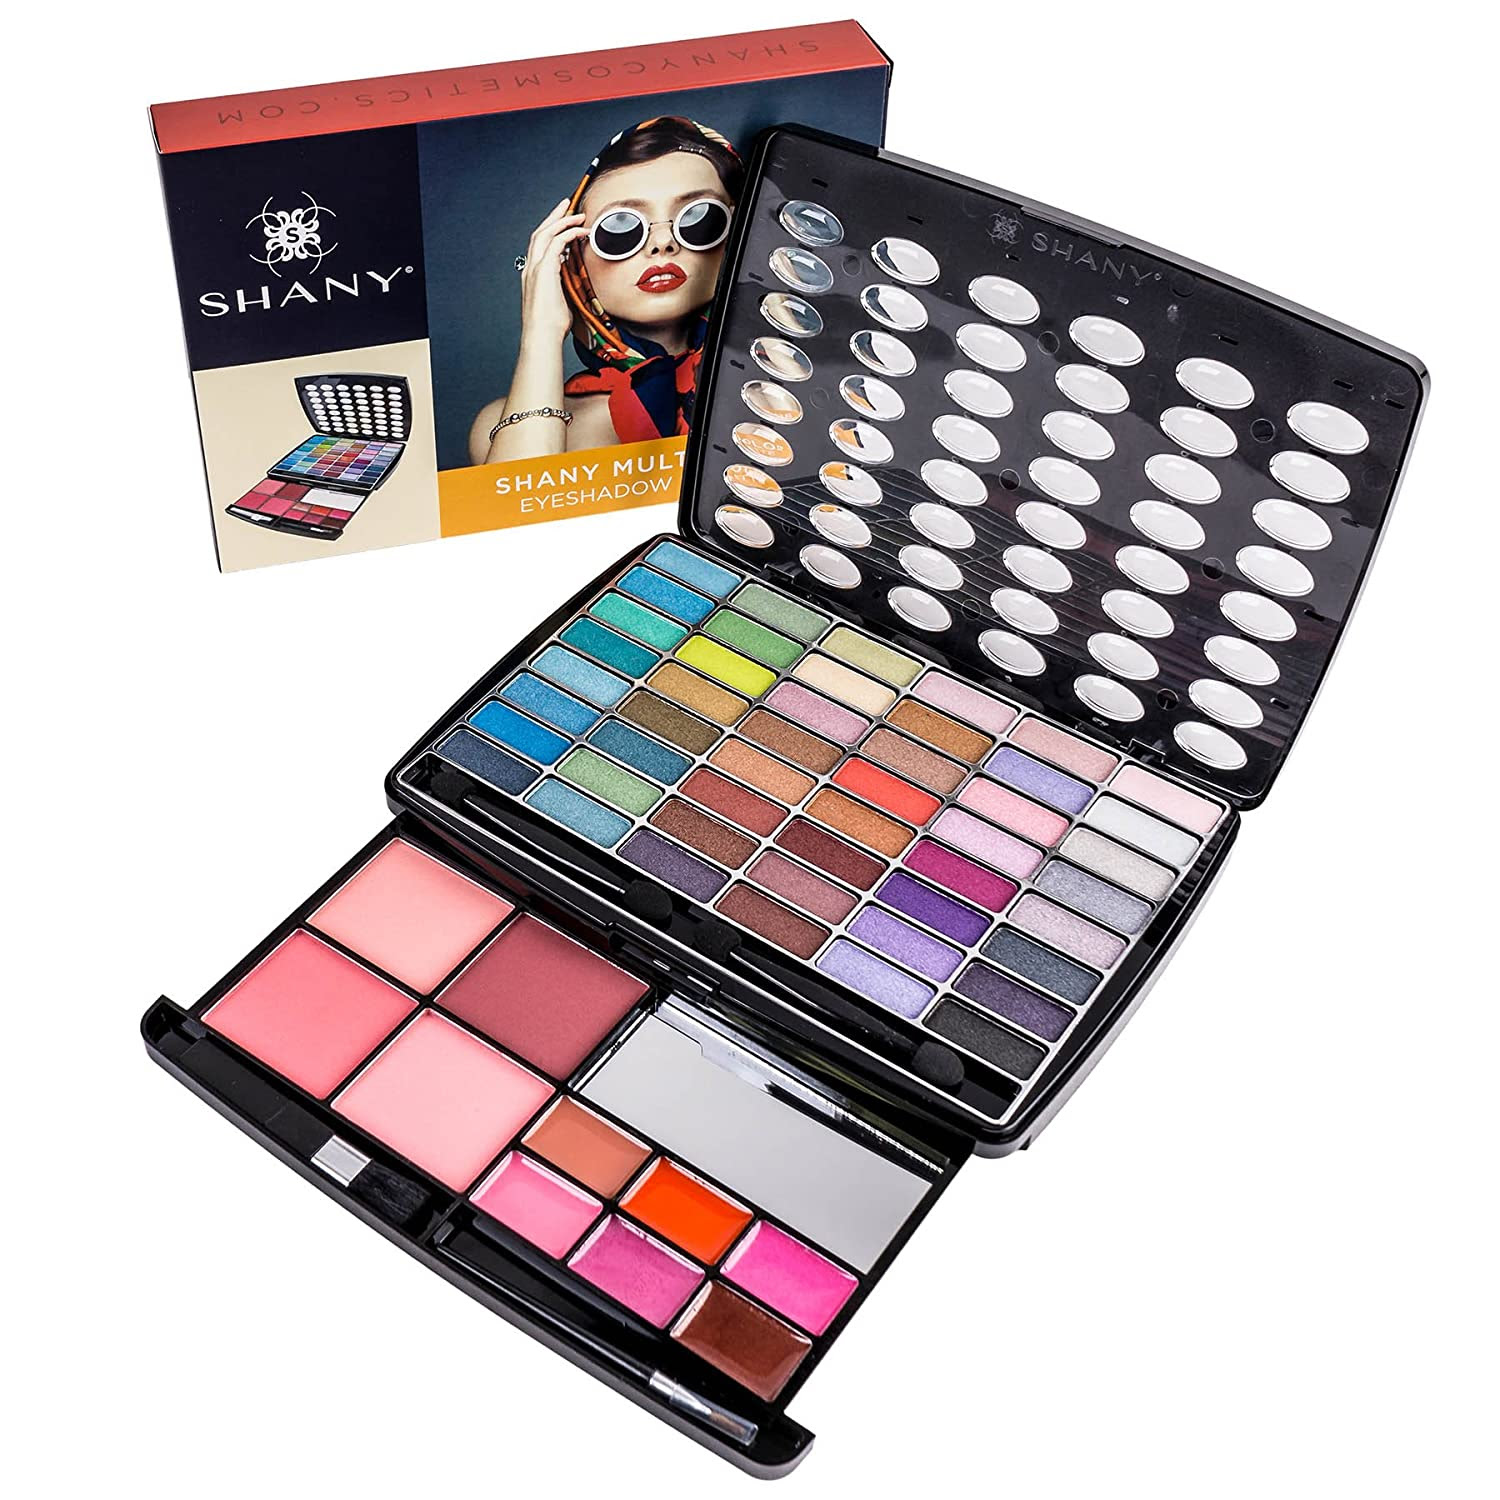 Shany Glamour Make-up kit